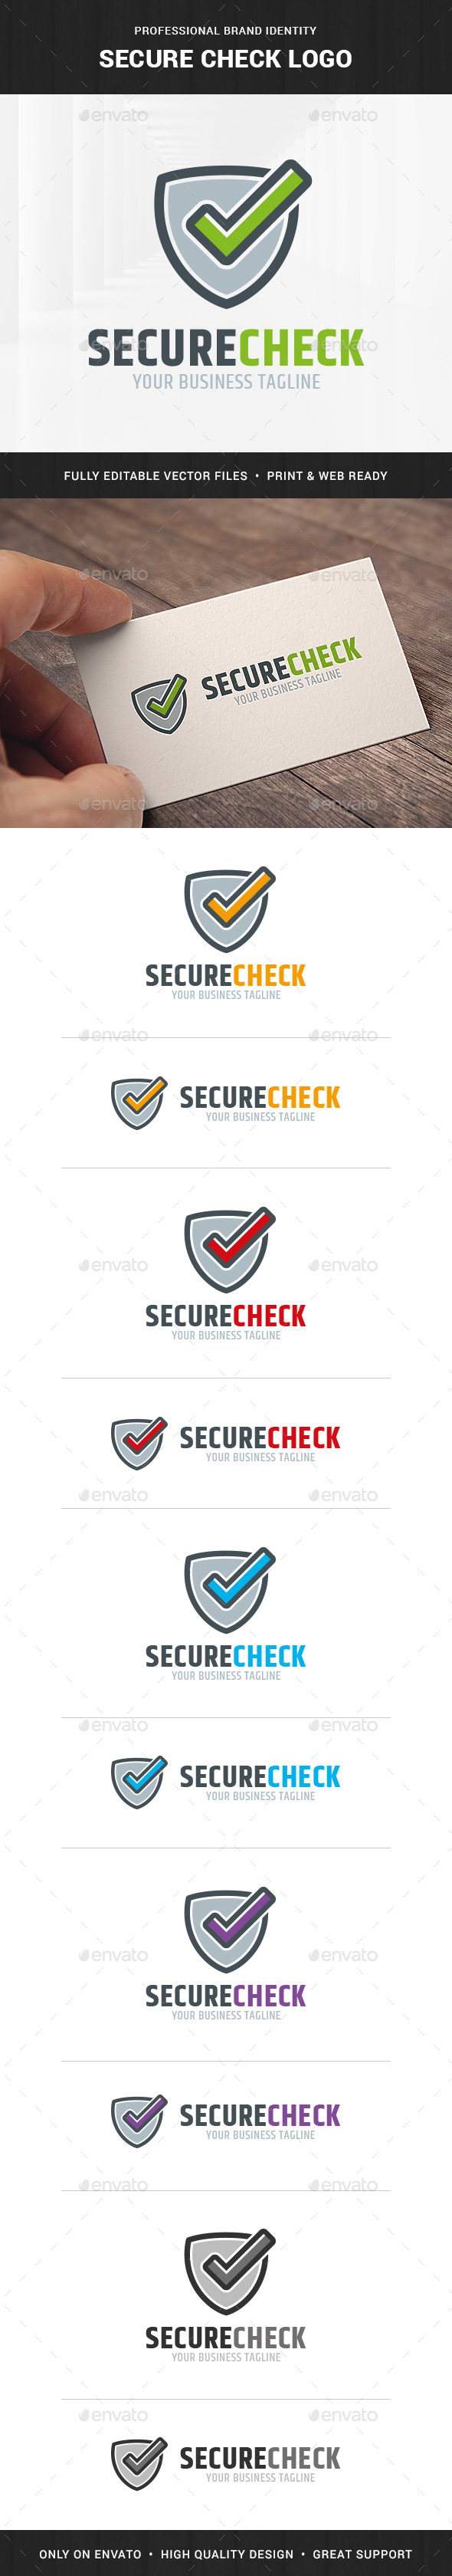 Secure Check Logo Template